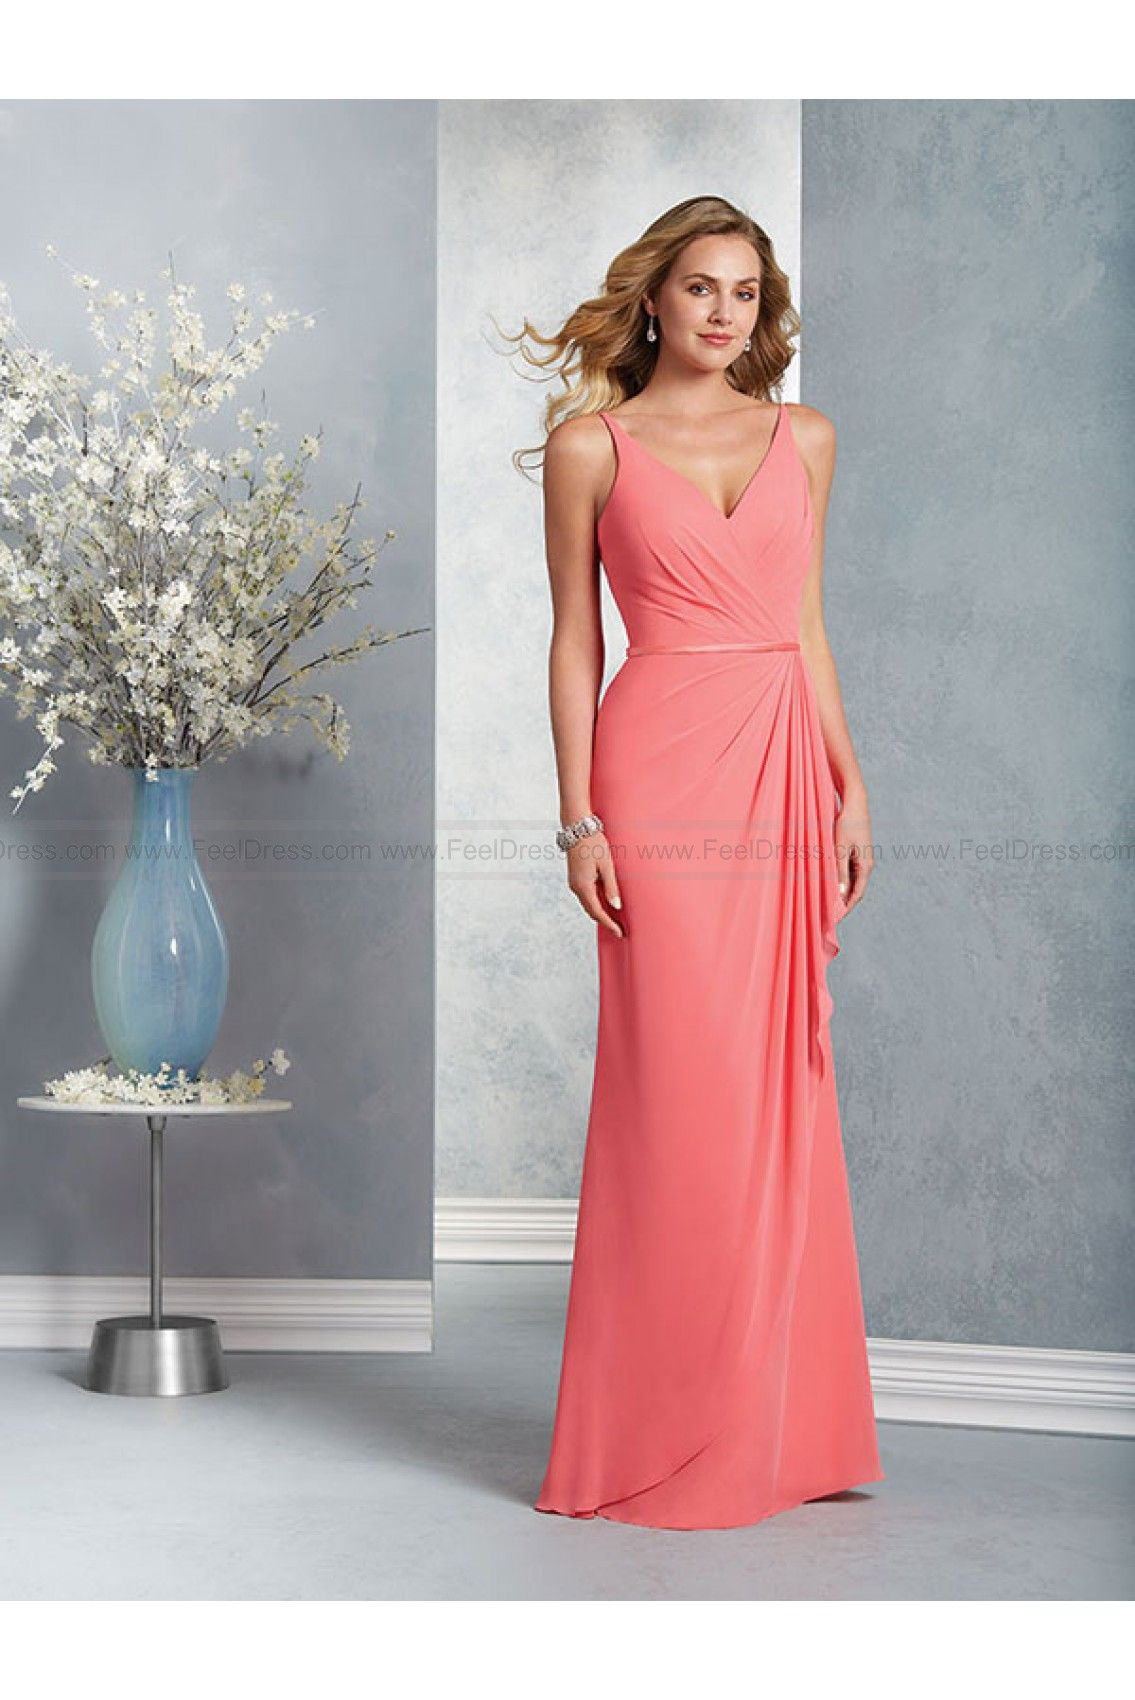 Alfred angelo bridesmaid dress style 7403 new alfred angelo alfred angelo bridesmaid dress style 7403 new ombrellifo Gallery